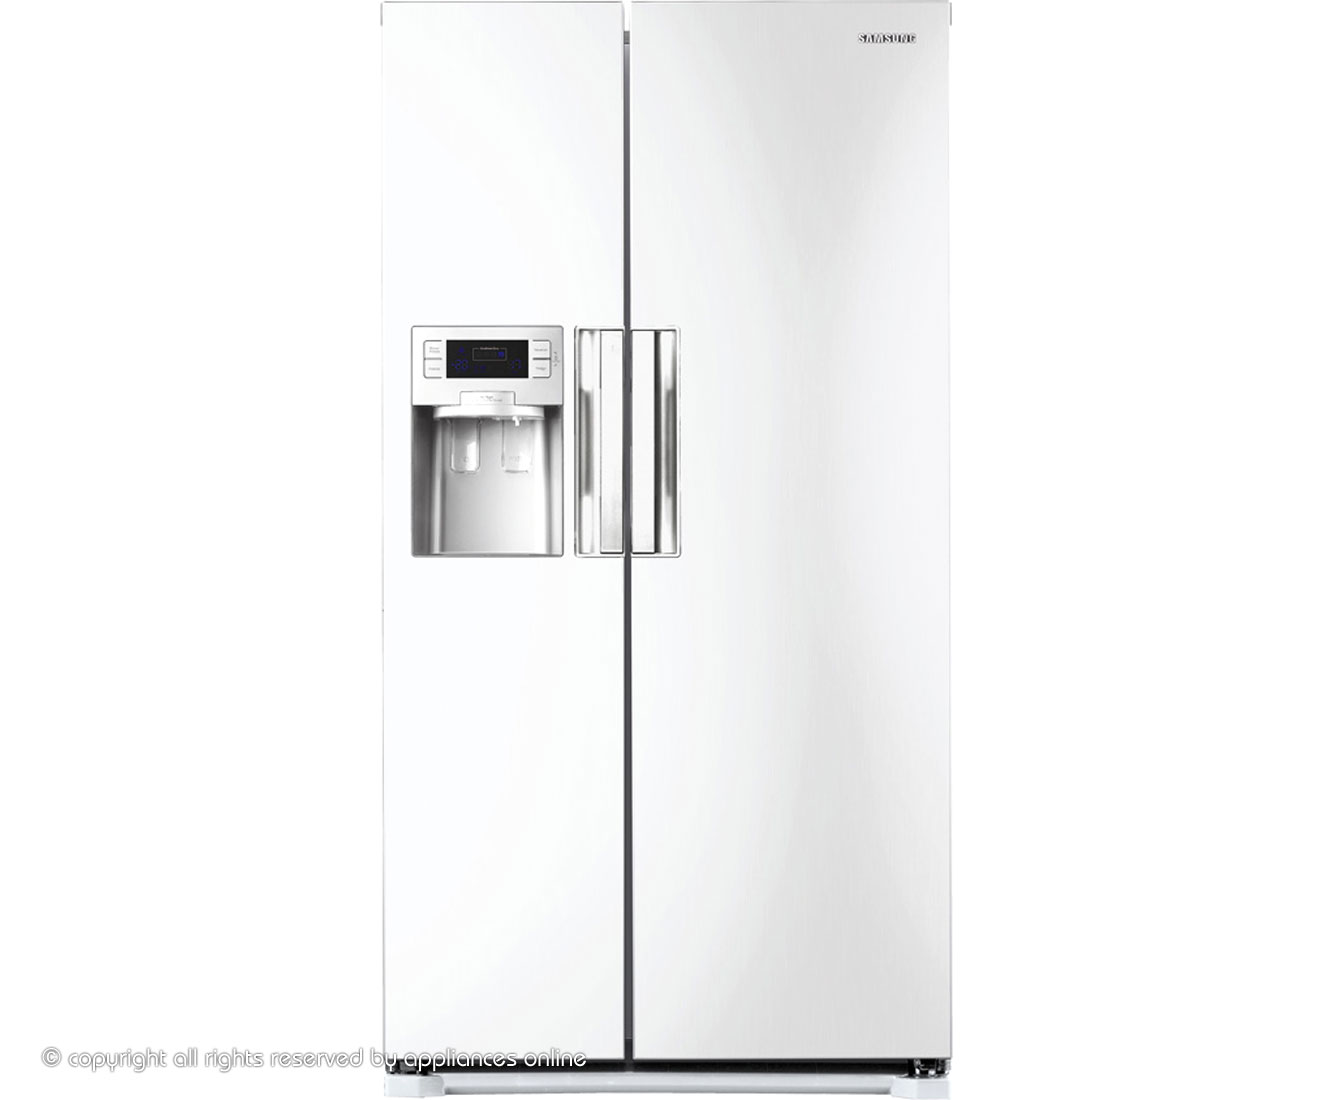 Samsung H-Series RSH7UNSW American Fridge Freezer - White